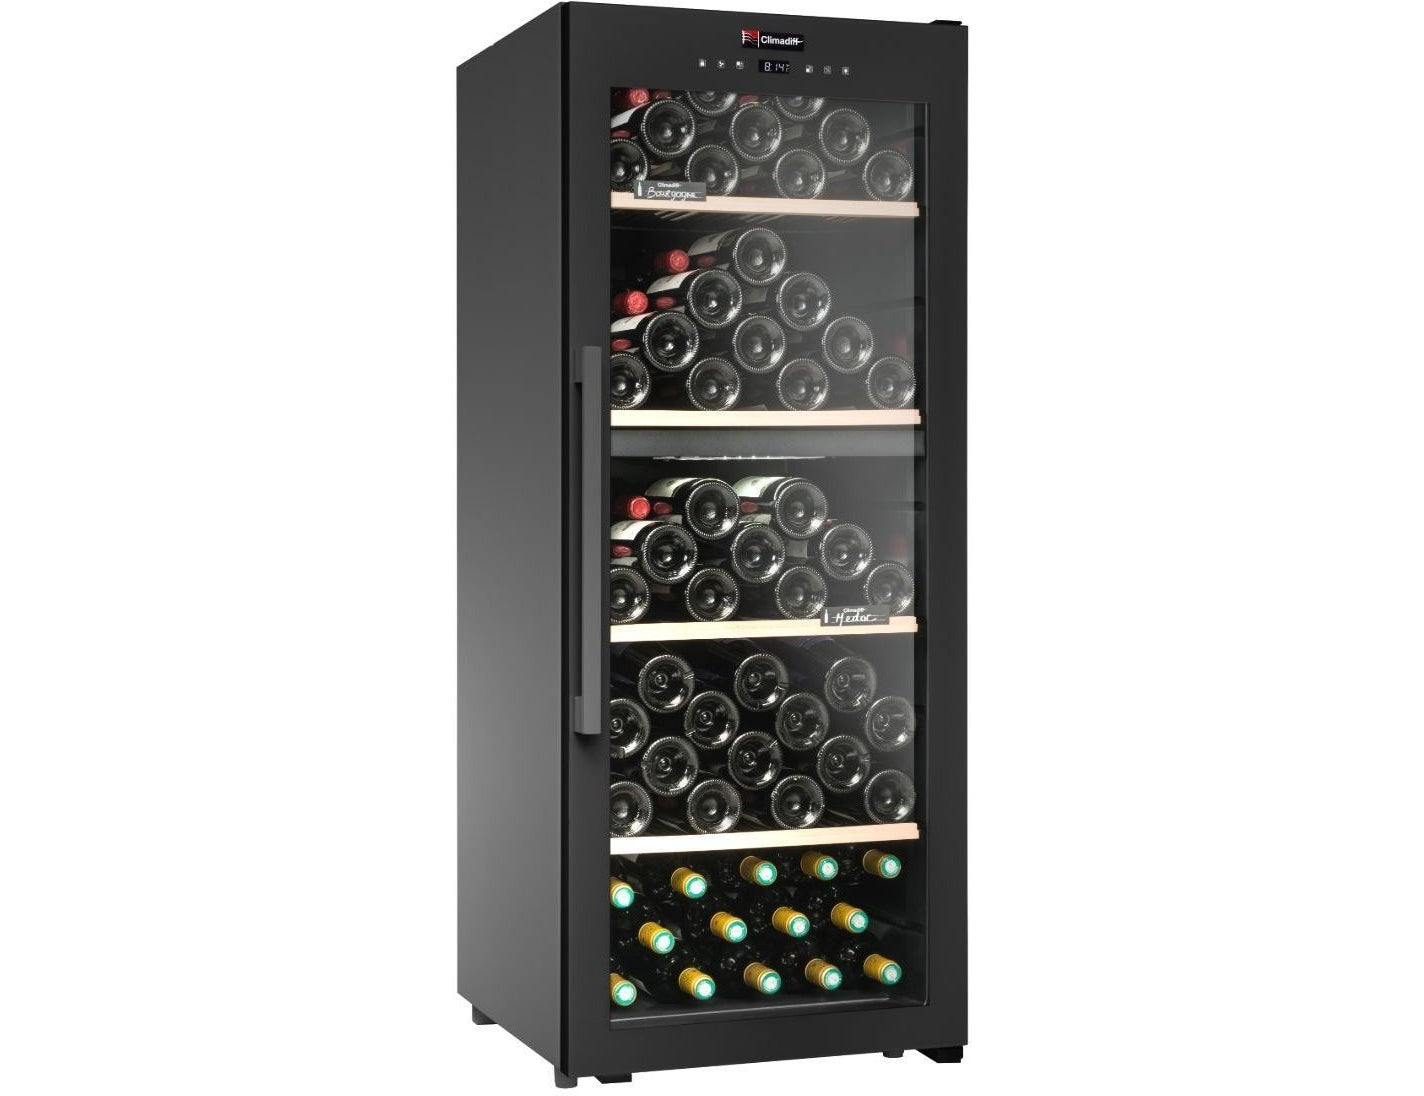 Climadiff CD110B1 - Dual Zone - Wine Cooler - 110 Bottles - Freestanding - 500mm Wide